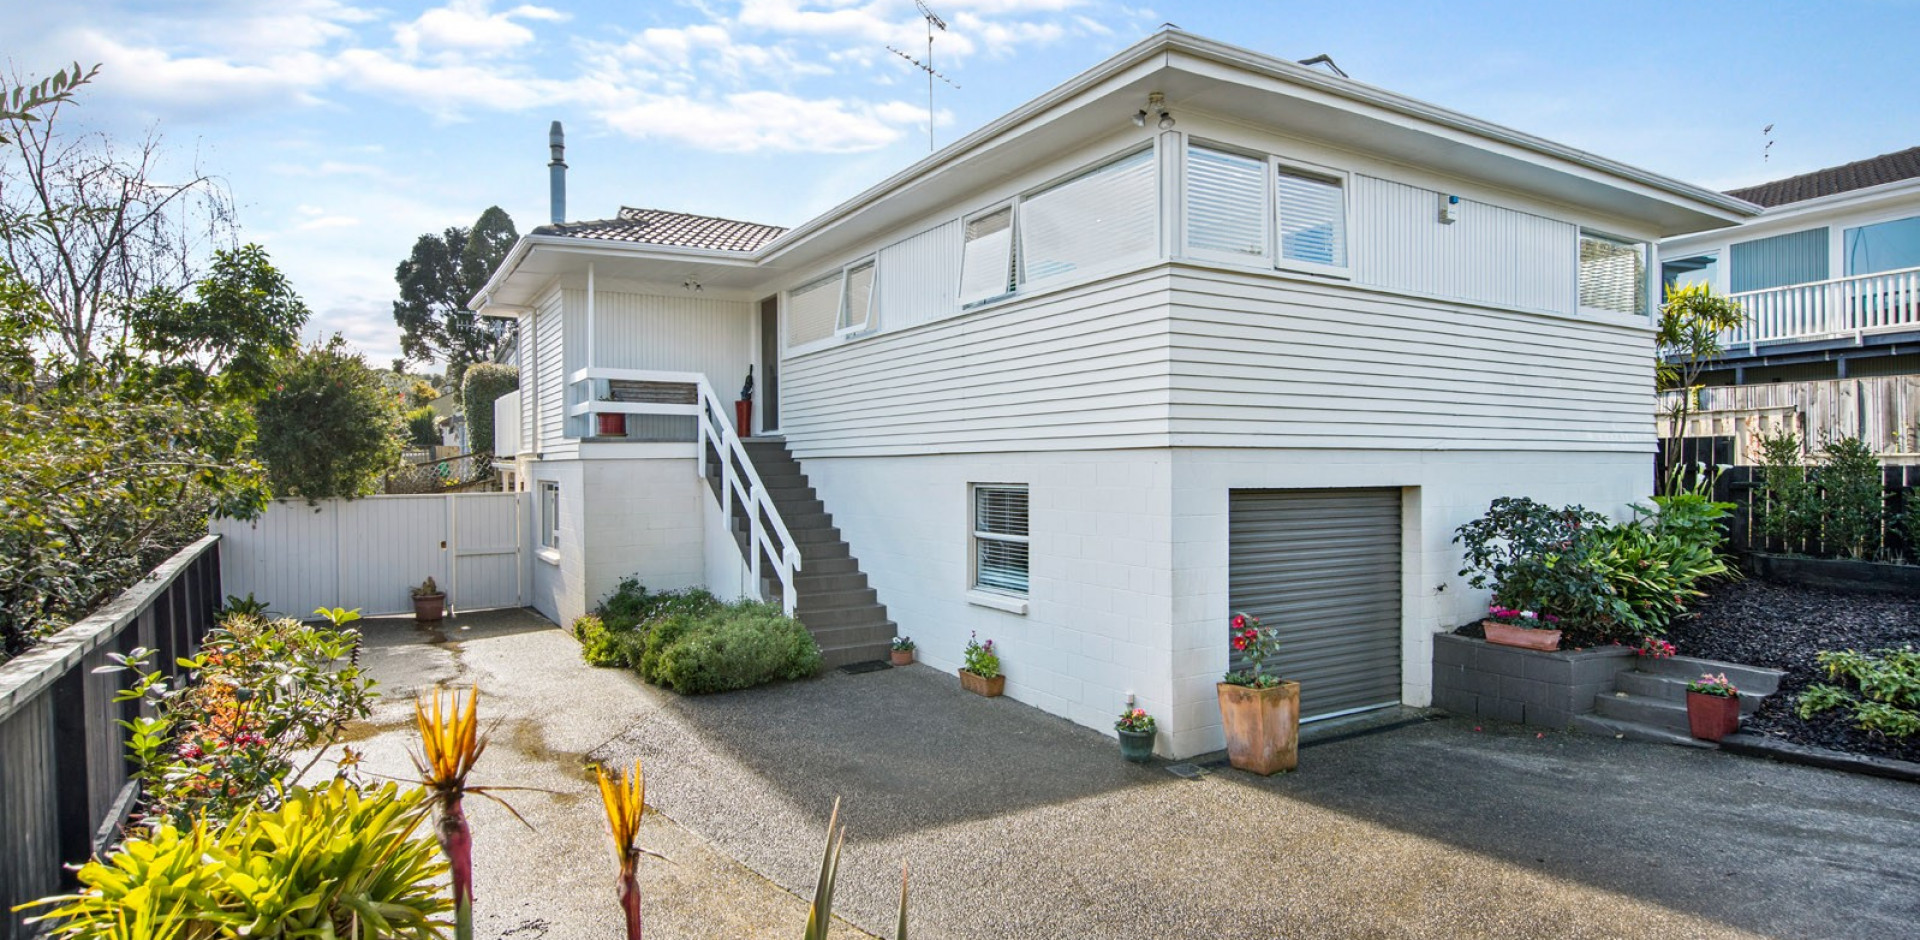 UP Real Estate Auckland NZ | Houses for sale